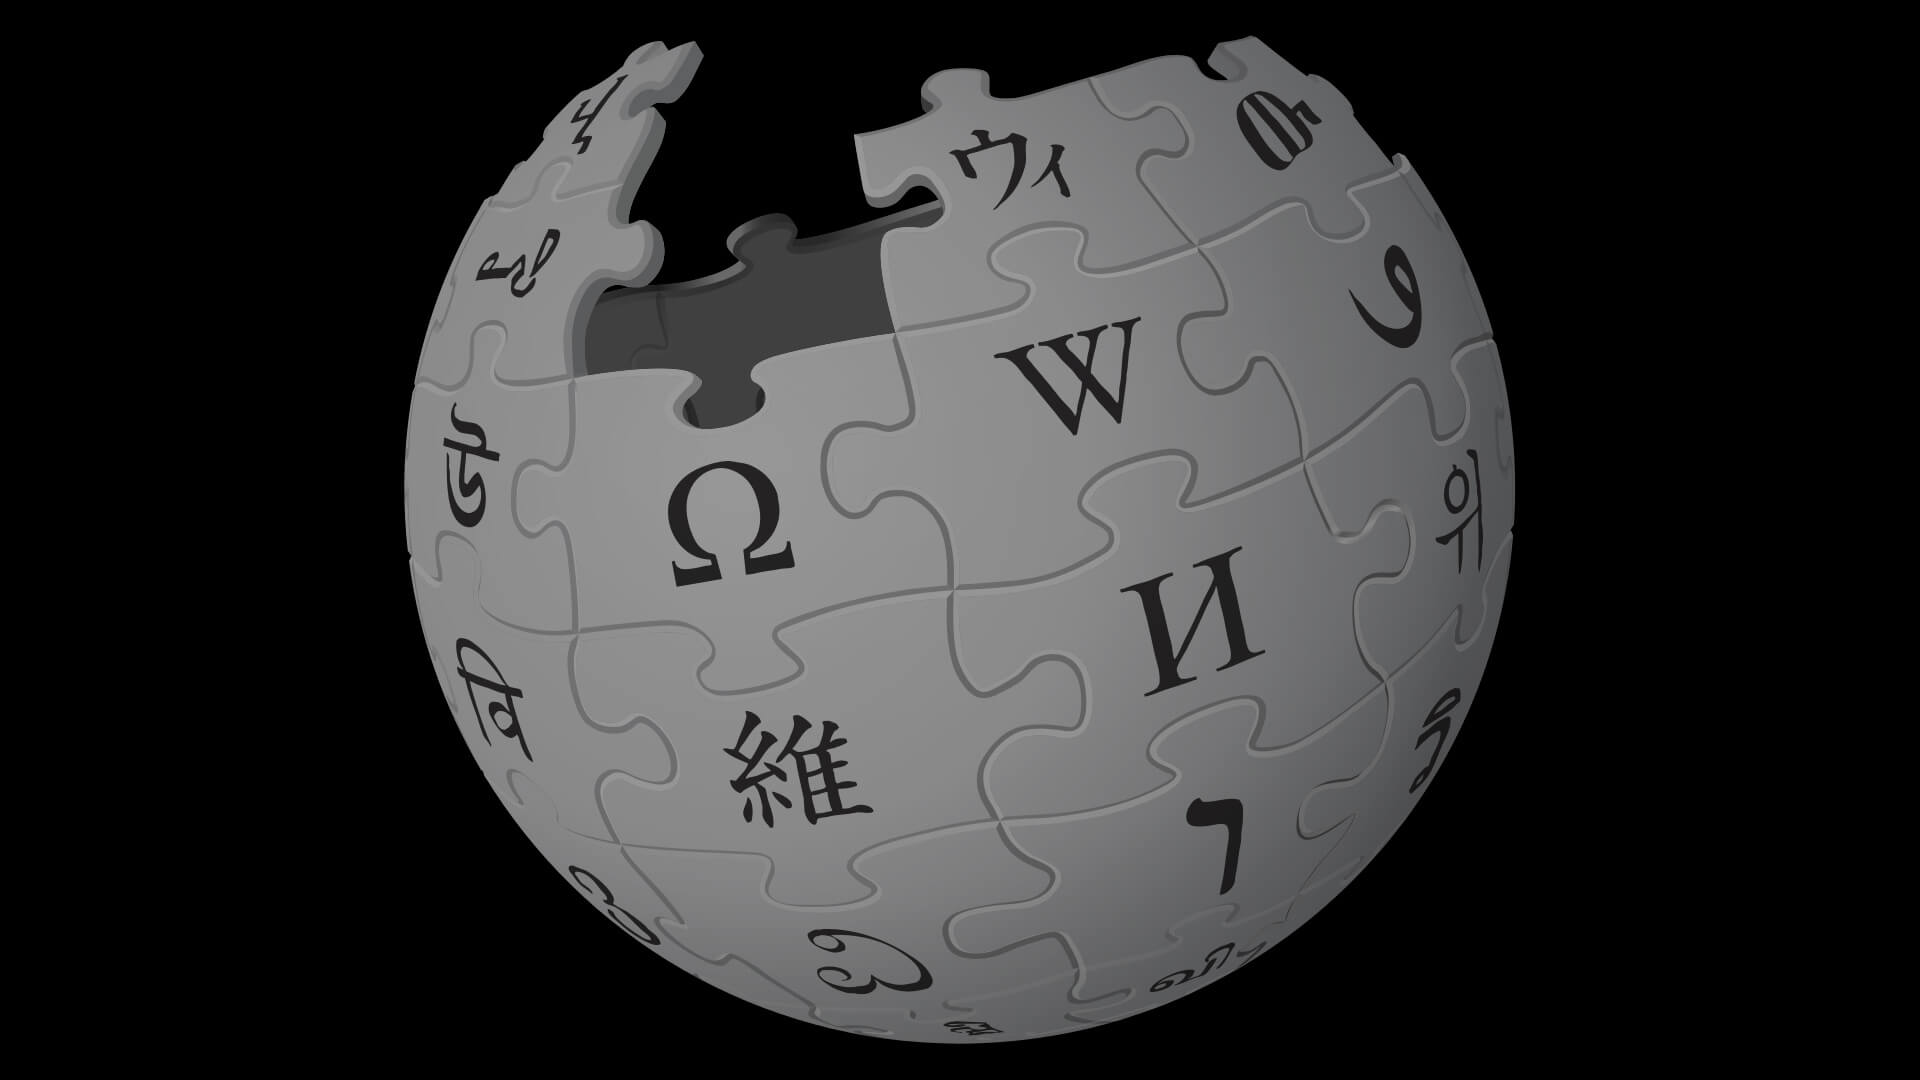 Wikimedia Foundation Secures $250,000 Grant for Search Engine Development